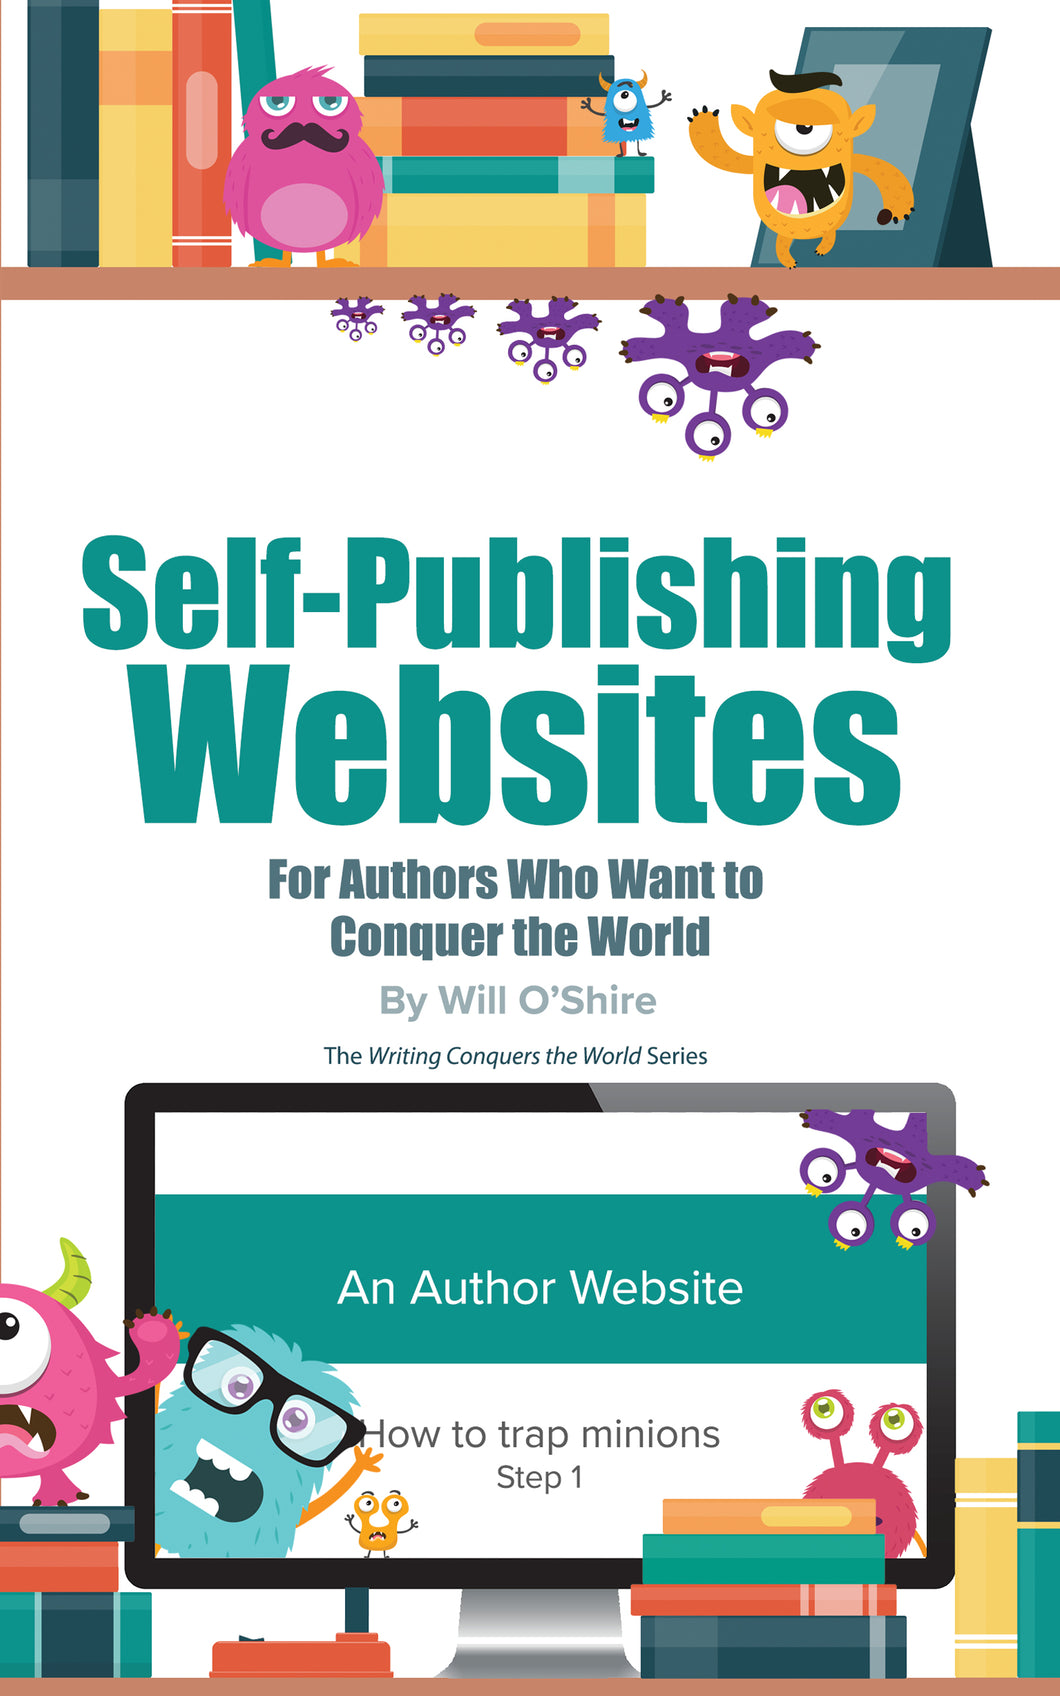 Self-Publishing Websites for Authors